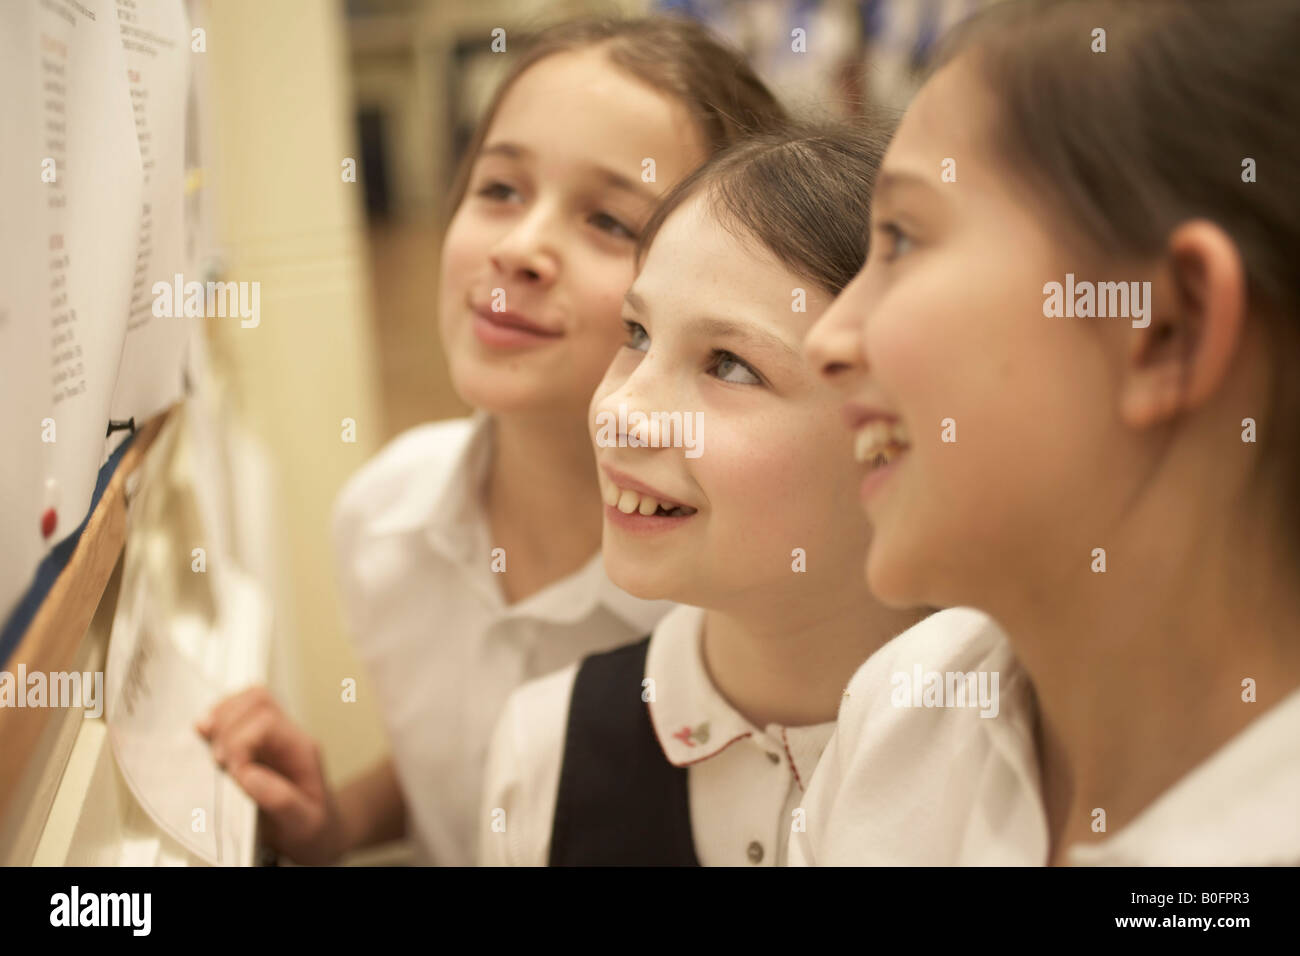 Girls reading message board - Stock Image